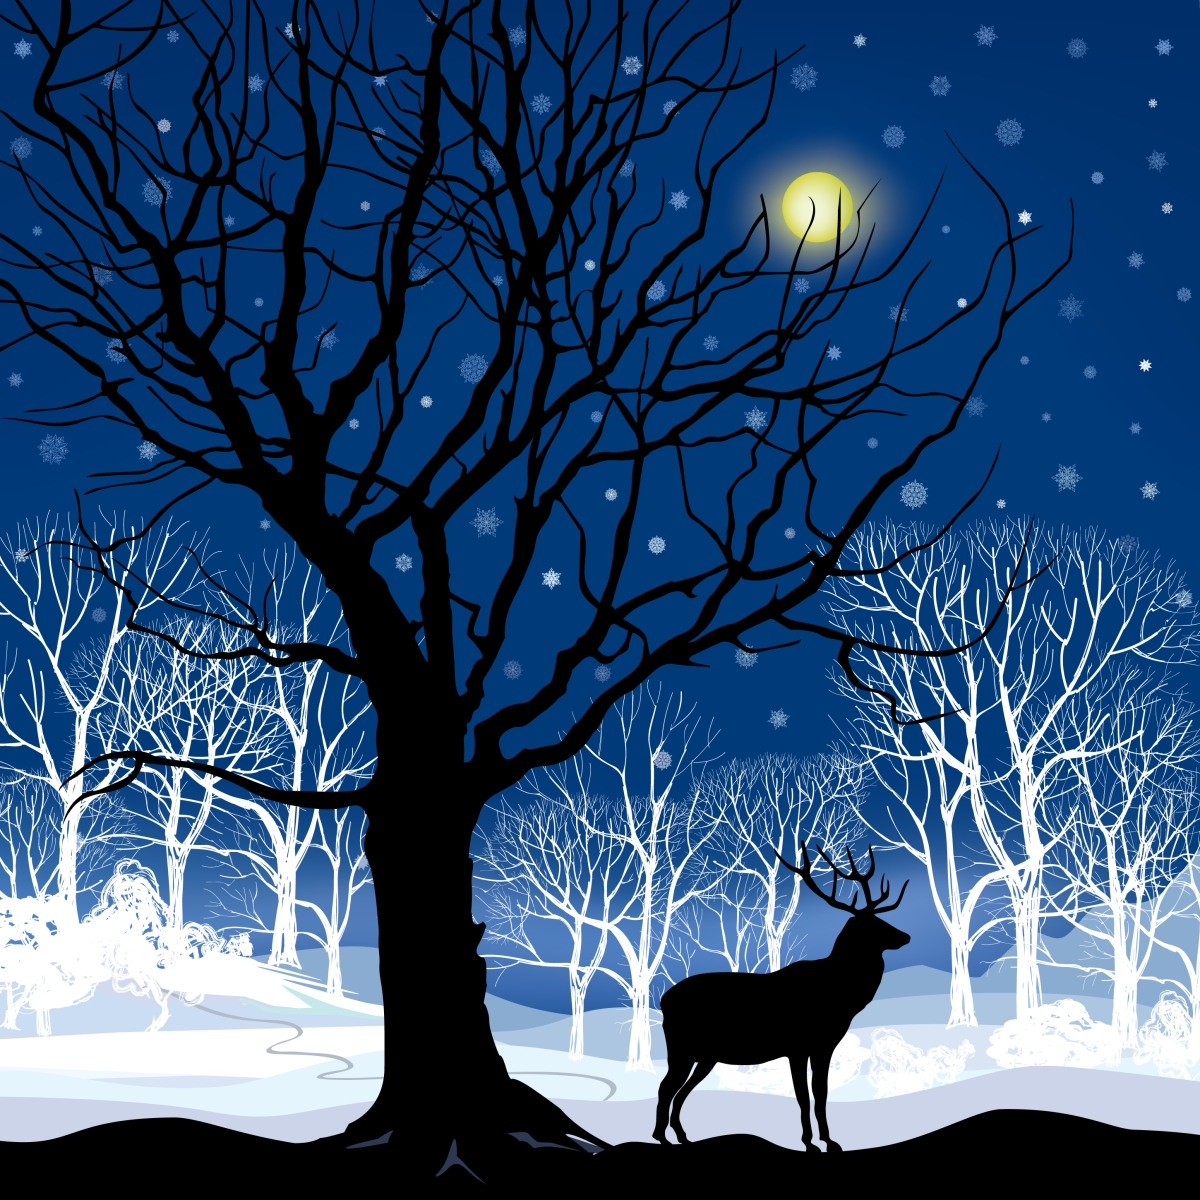 The night is waiting deer with eyes...